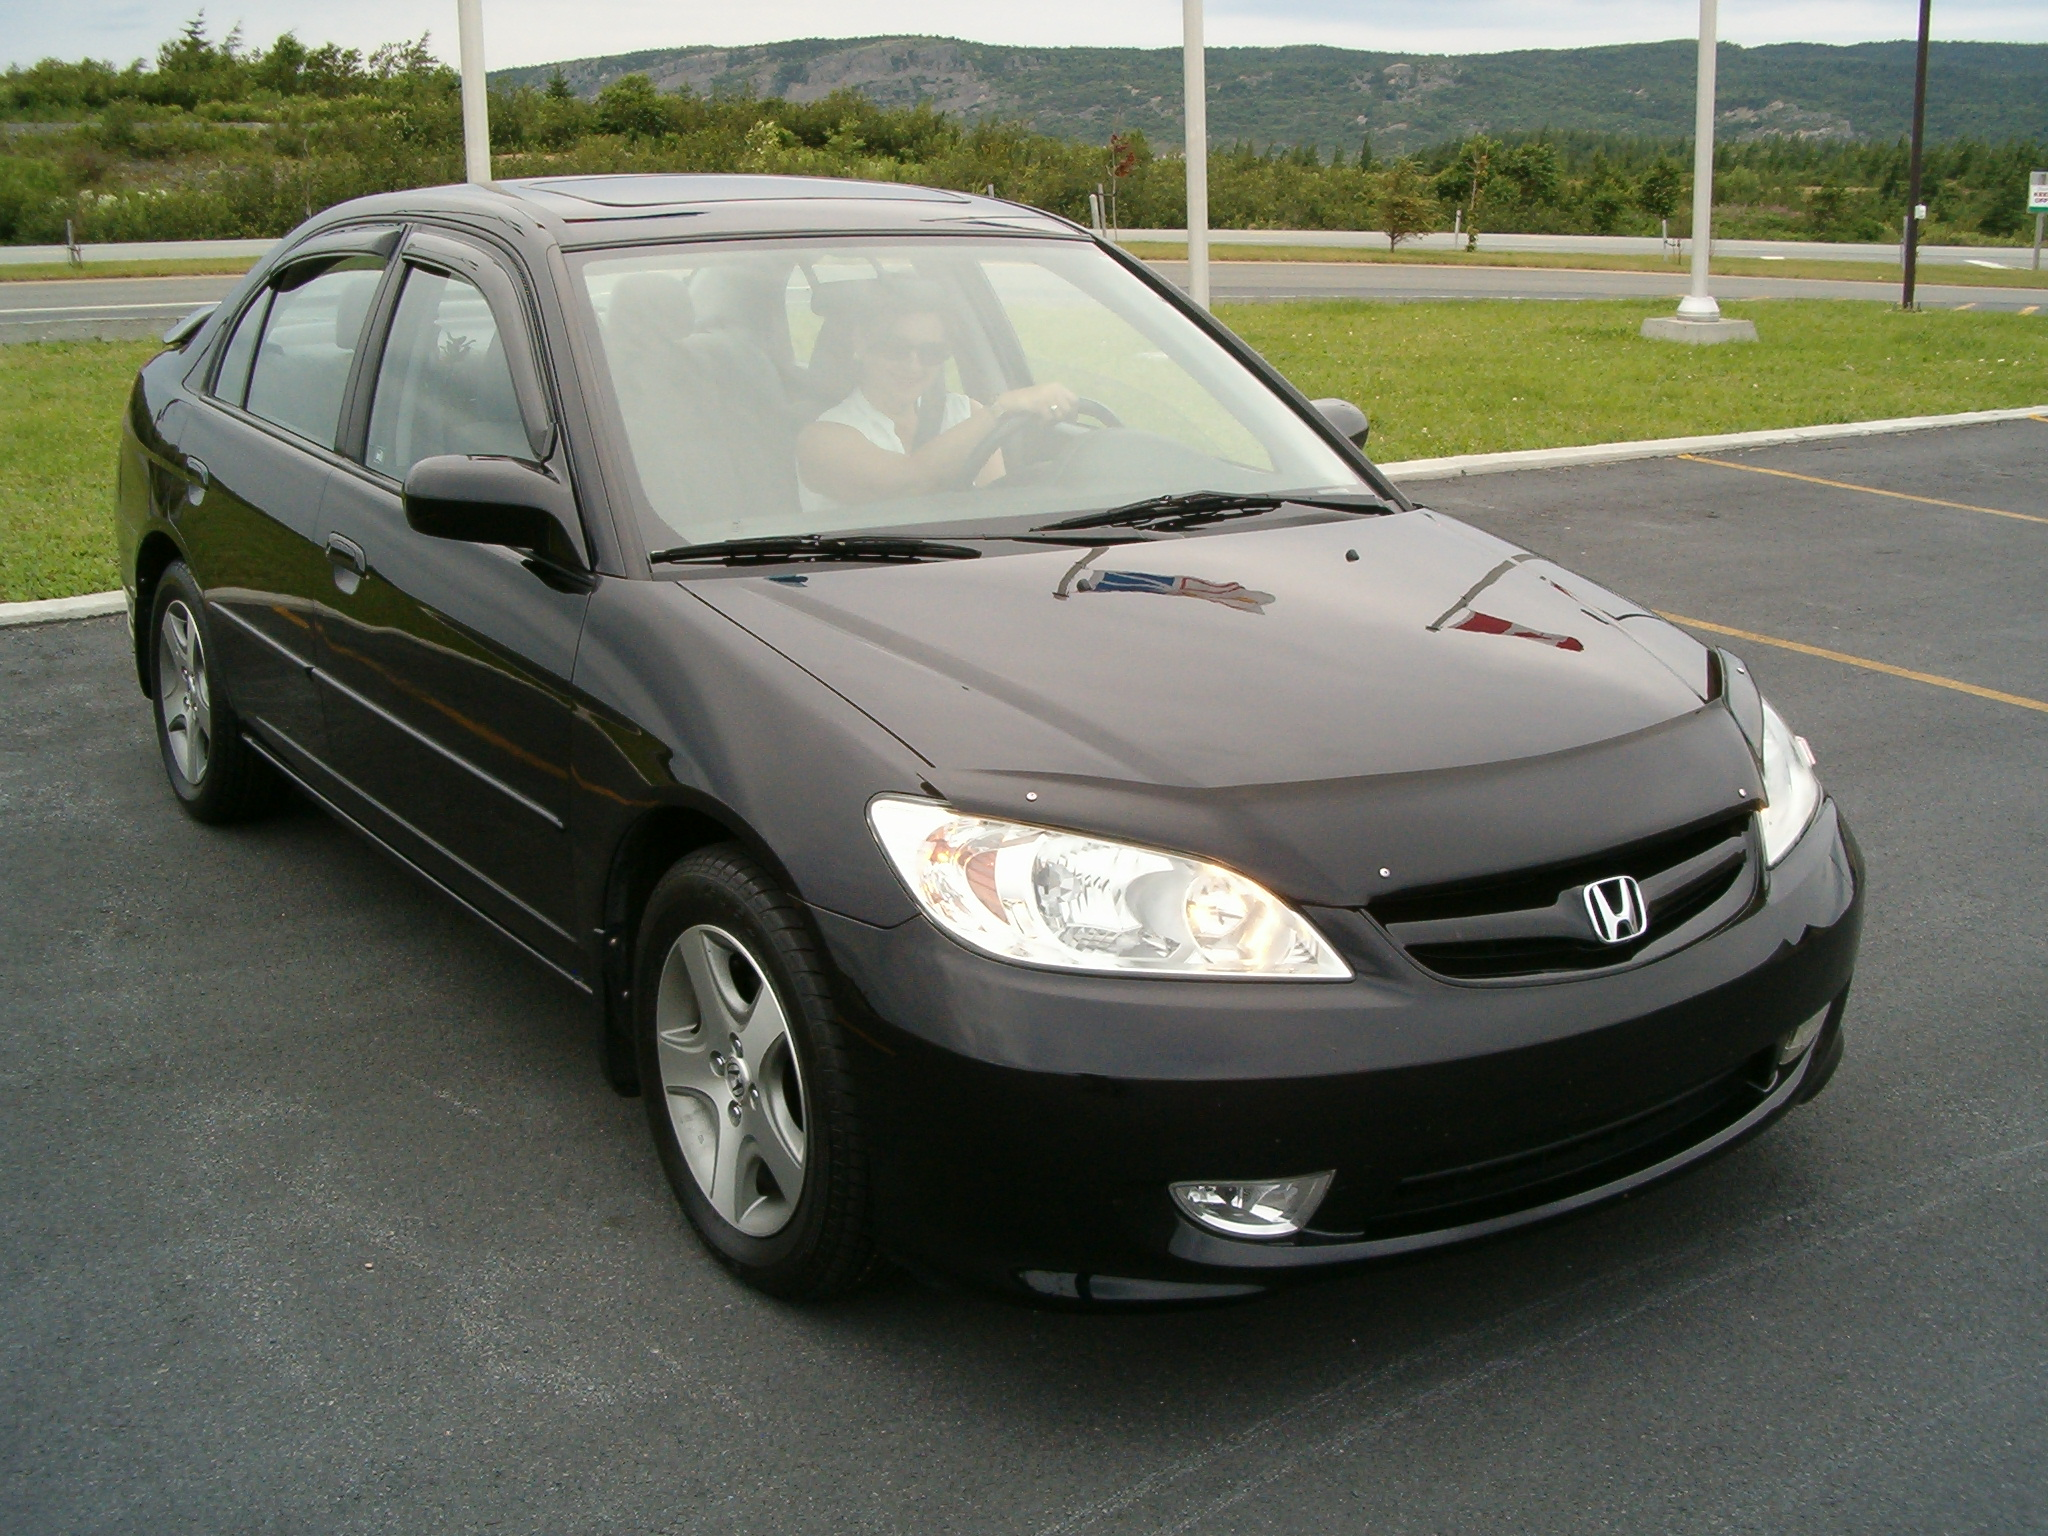 2004 Honda Civic Information And Photos Momentcar